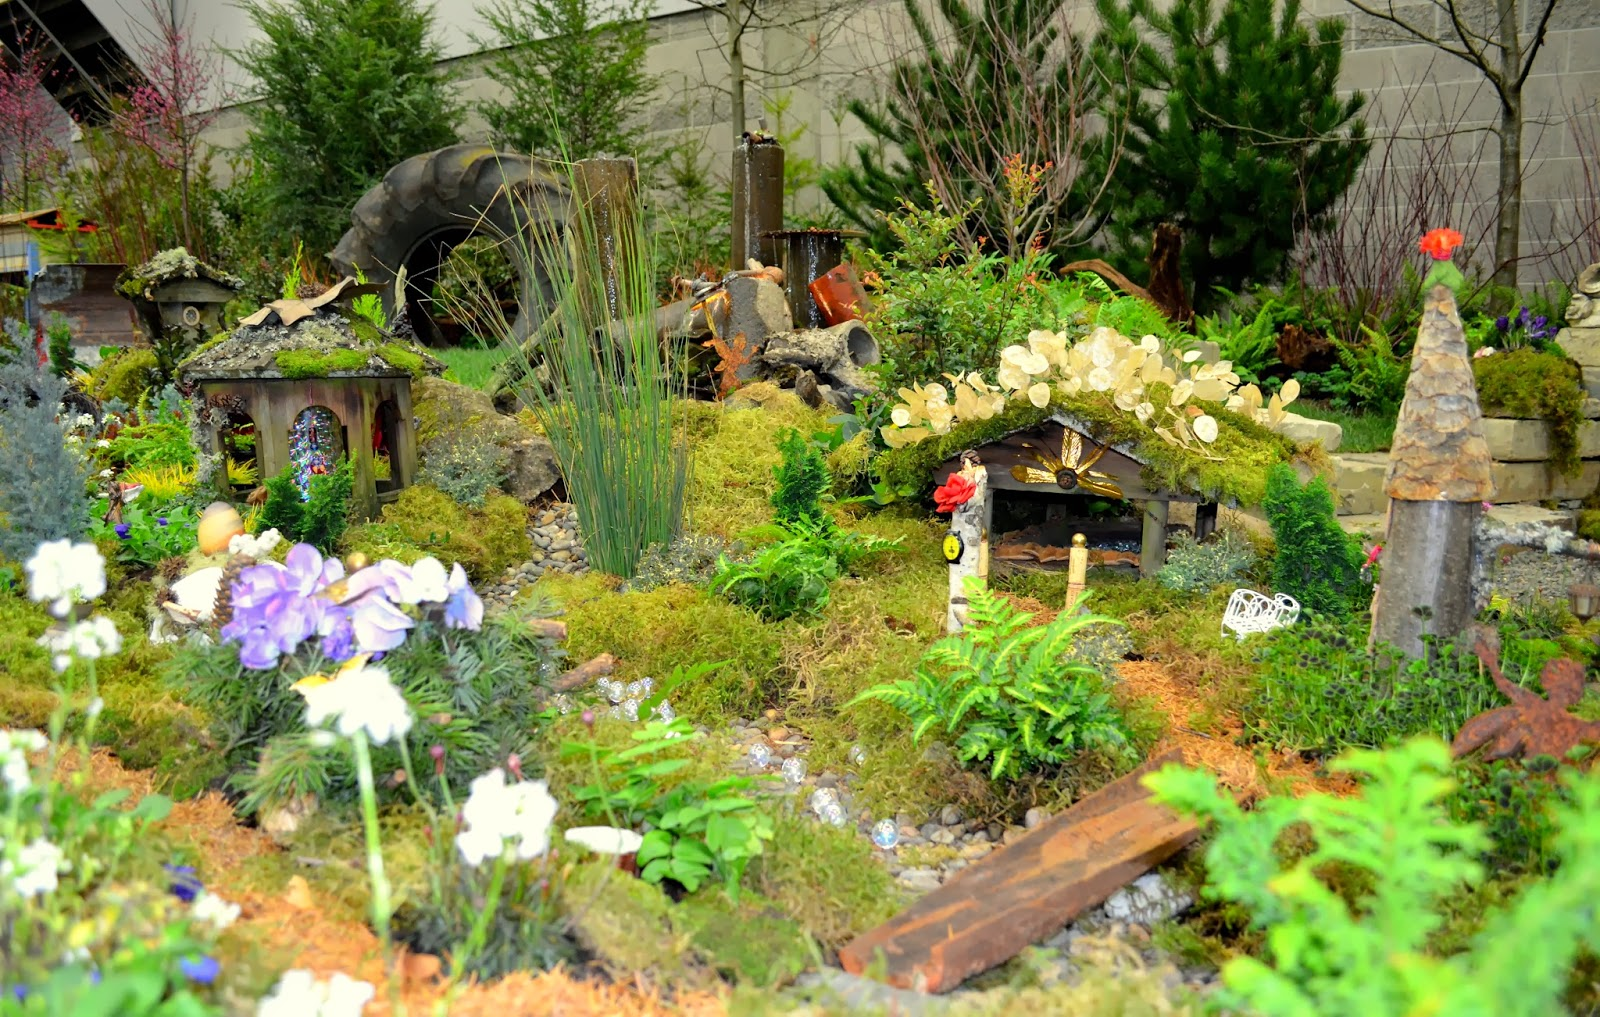 Scenes from the Portland Yard Garden & Patio Show 2014